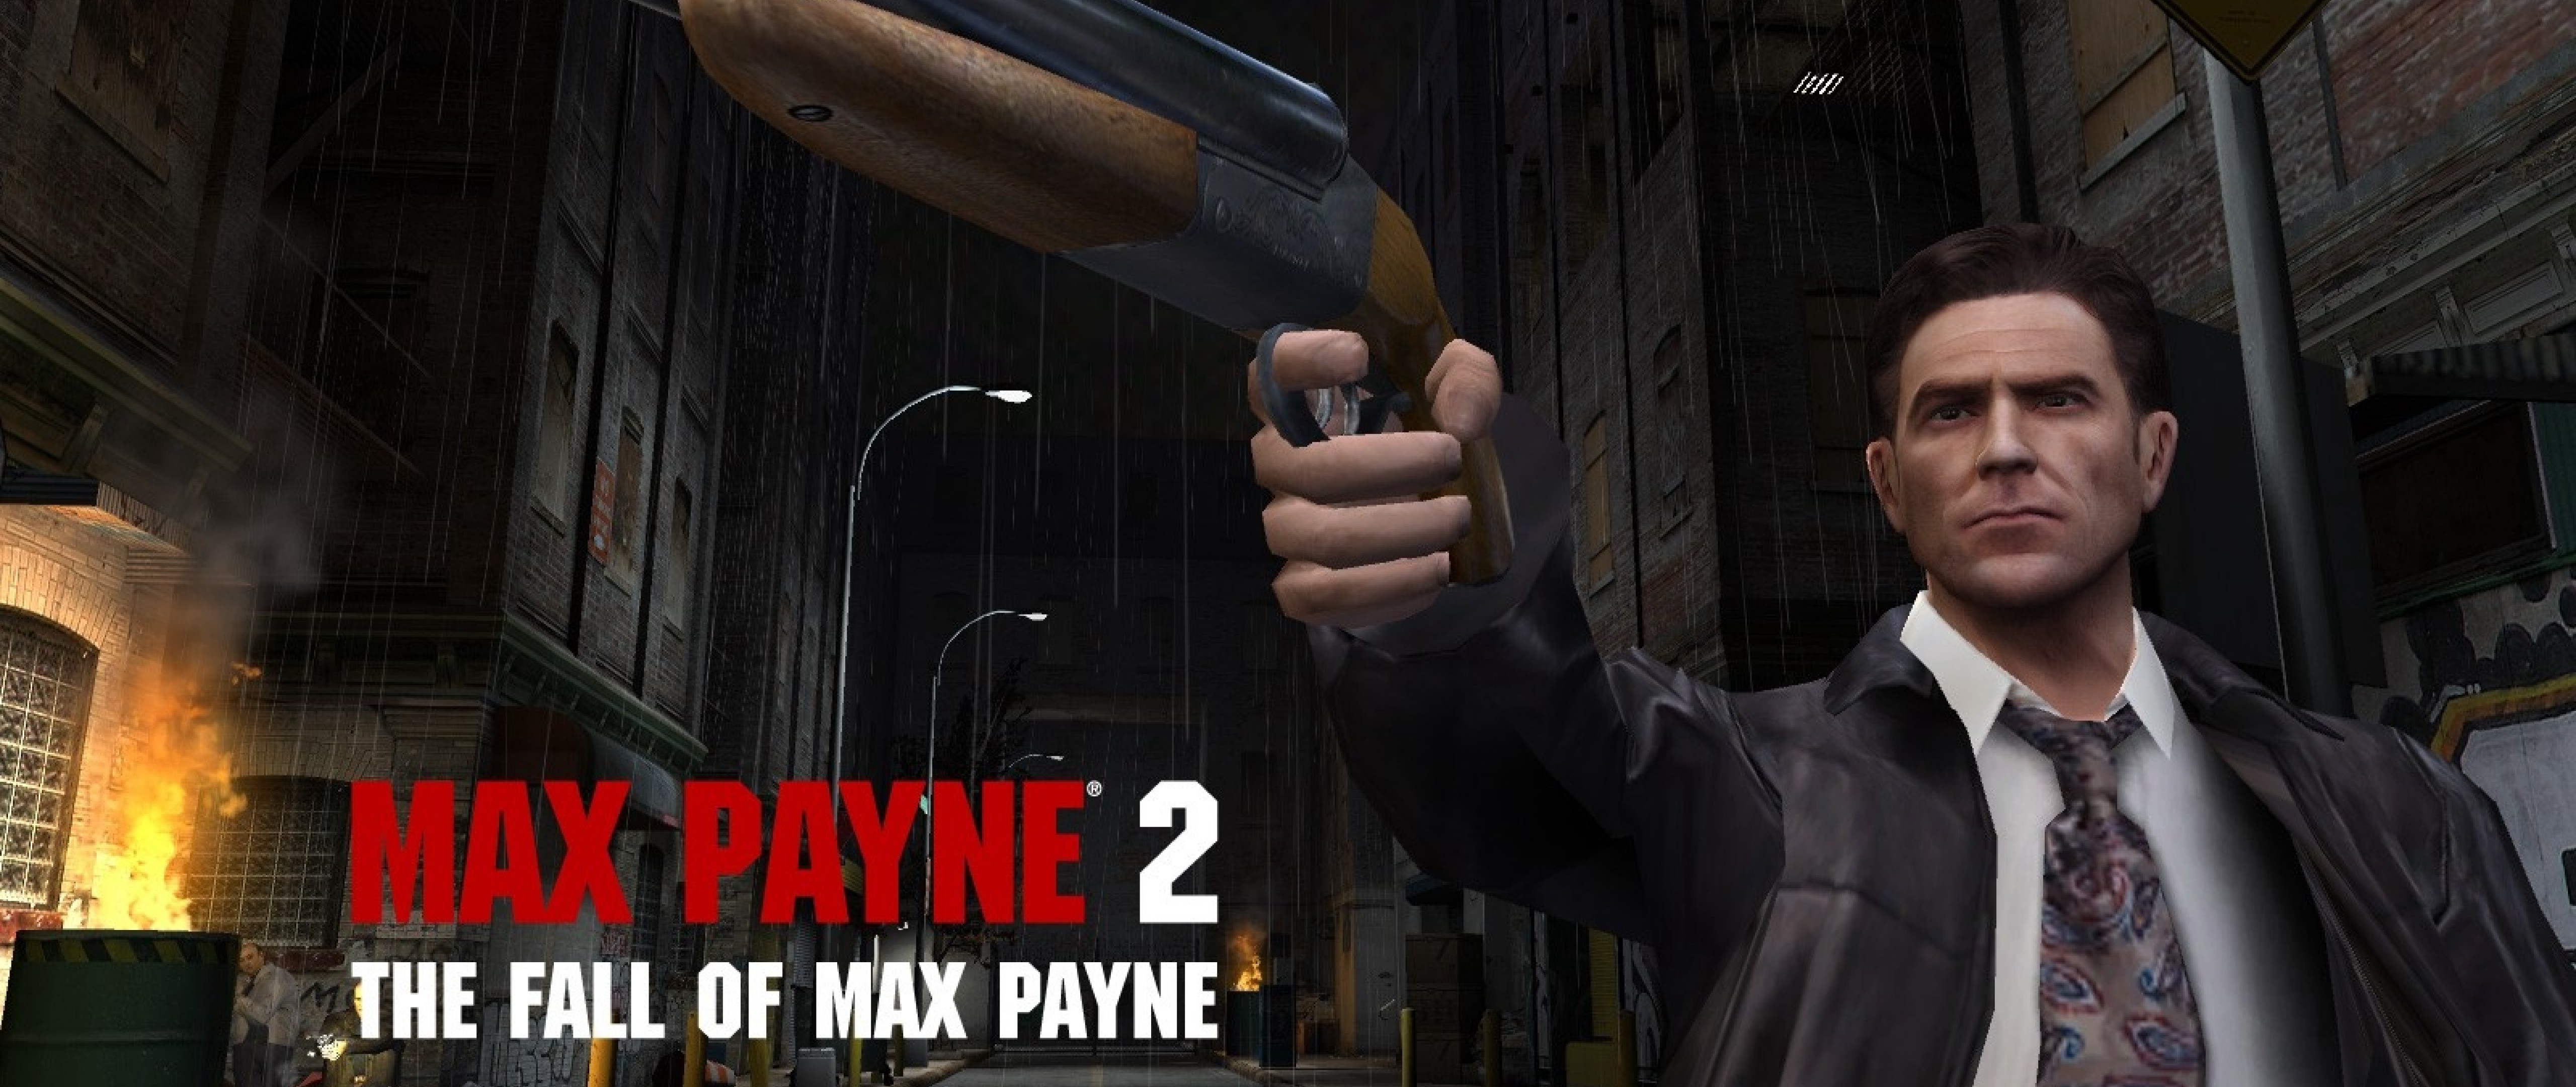 The Fall Of Max Payne Hd Wallpaper 4k Ultra Hd Wide Tv Hd